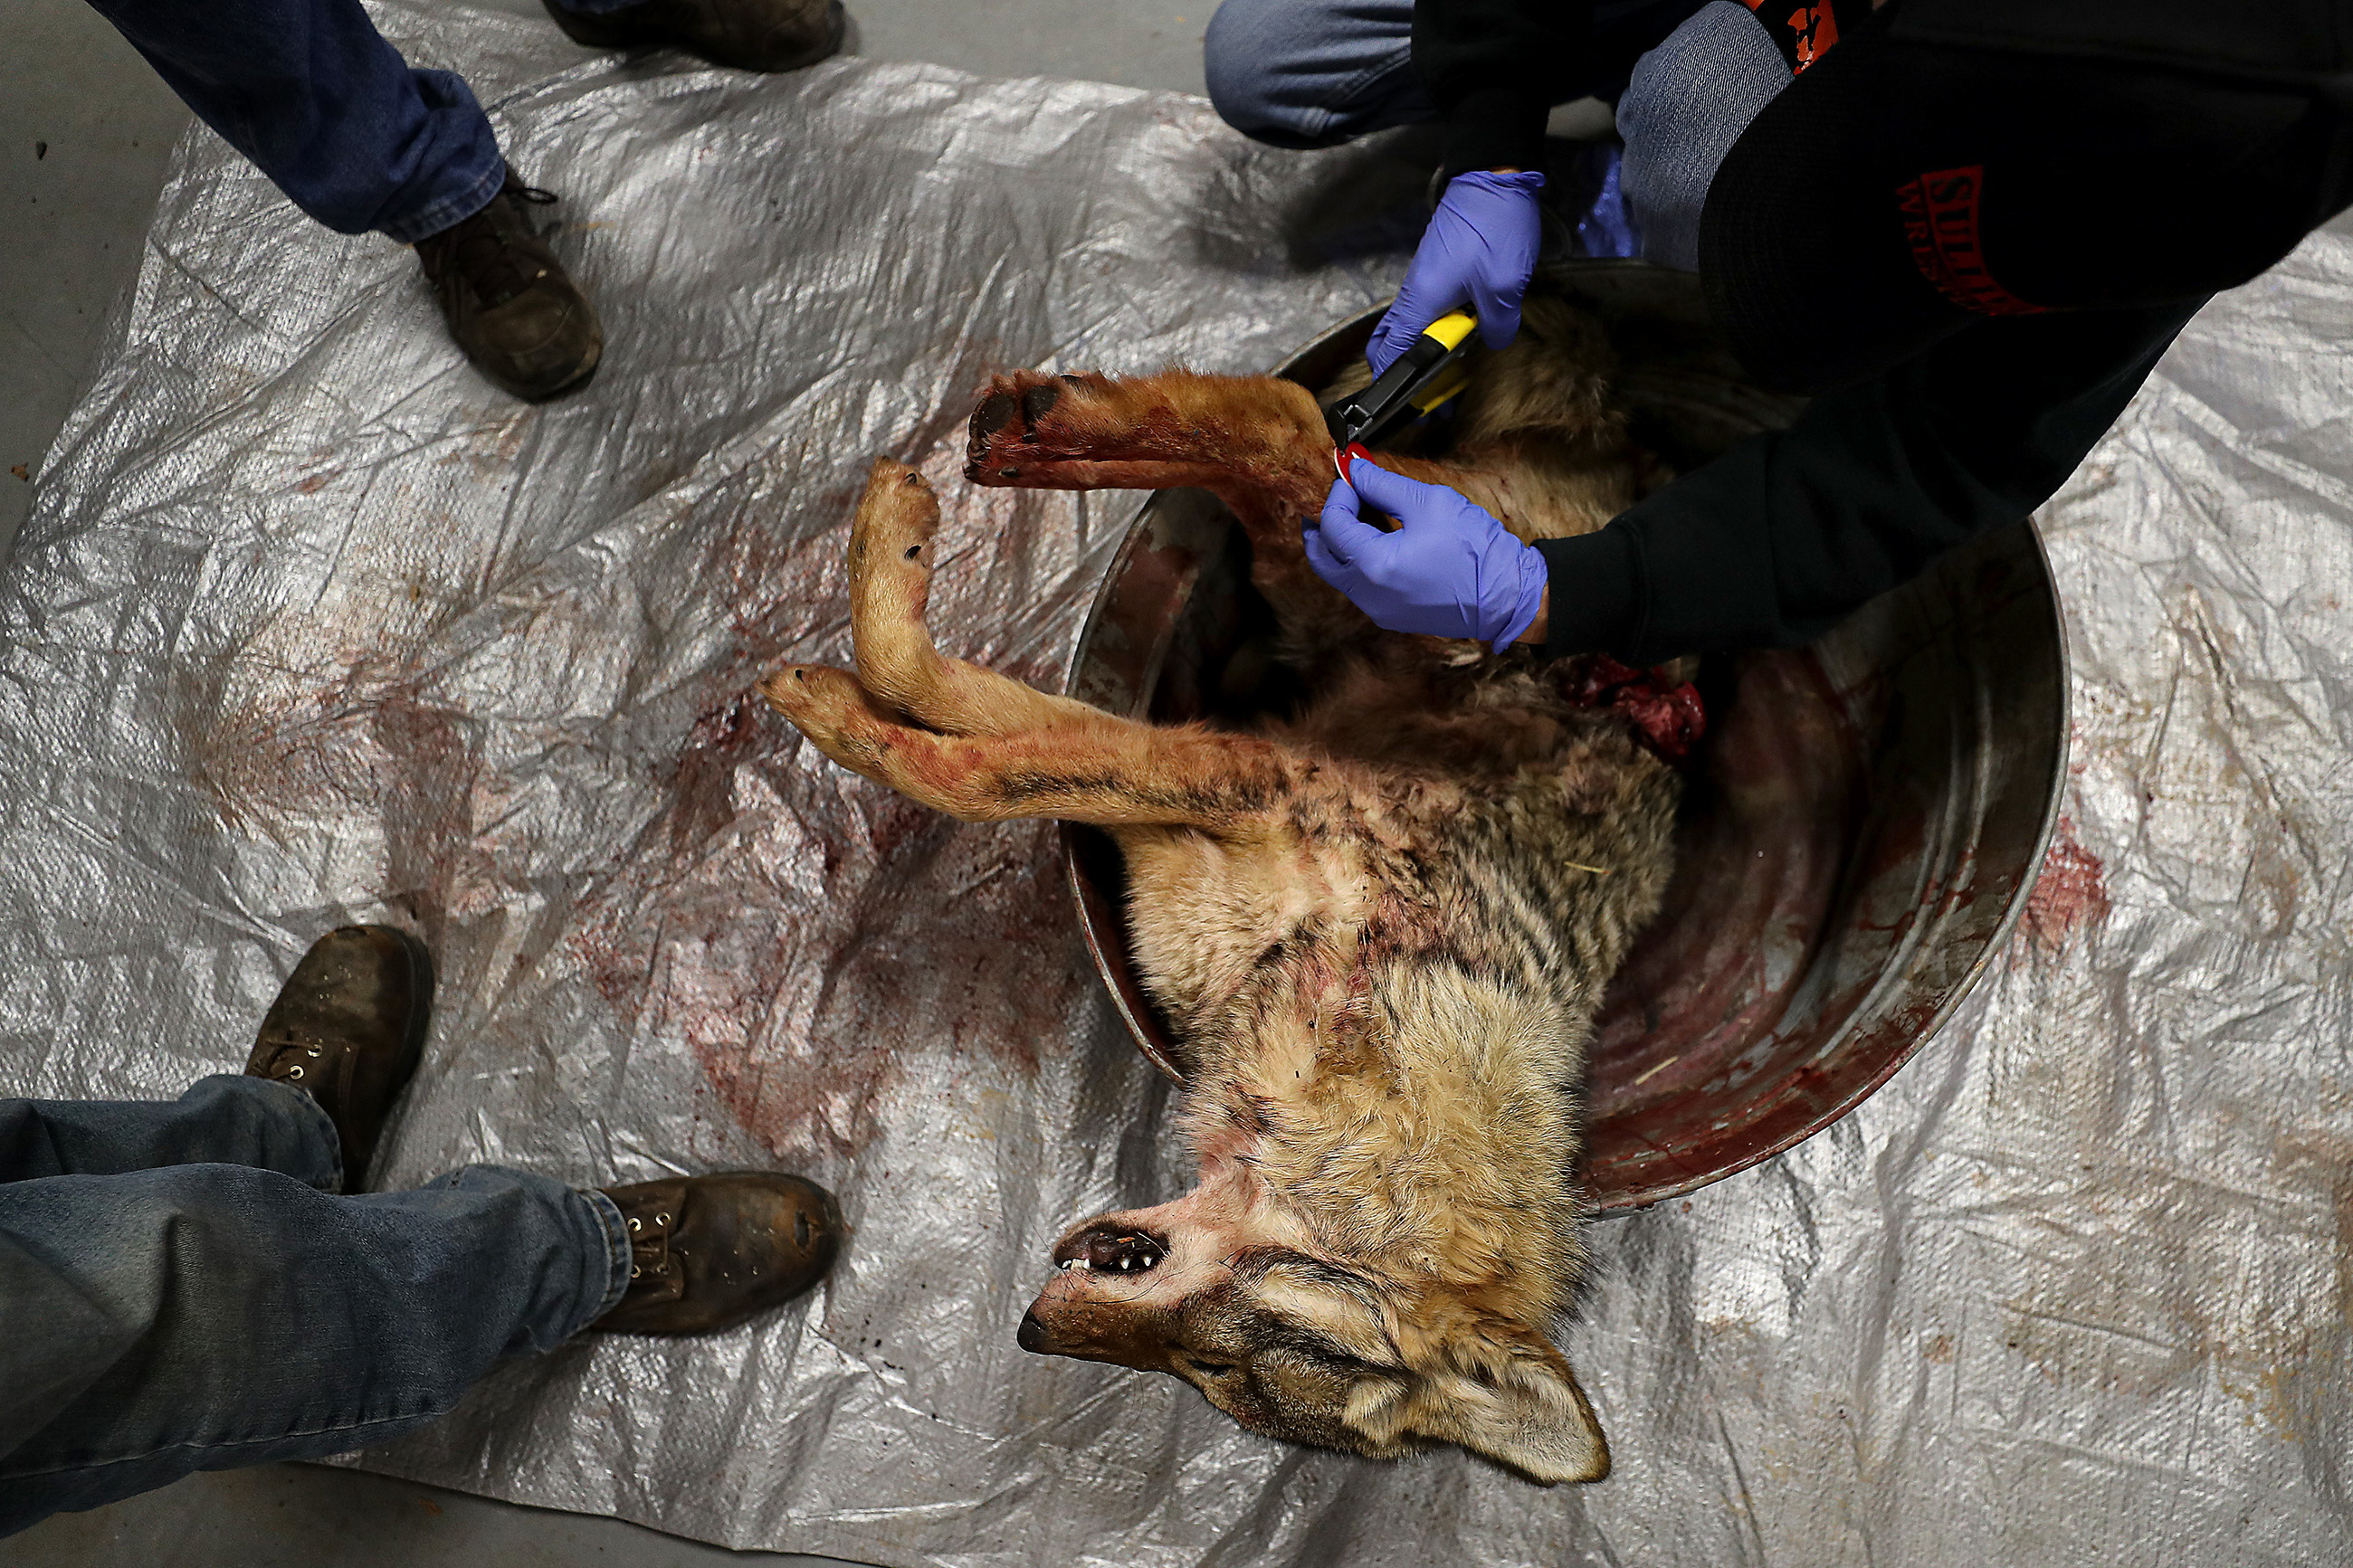 Organizers tag one of the coyotes brought into the firehouse during the 17th annual Sullivan County Coyote Hunt in Laporte, PA on February 23, 2020.DAVID MAIALETTI / Staff Photographer